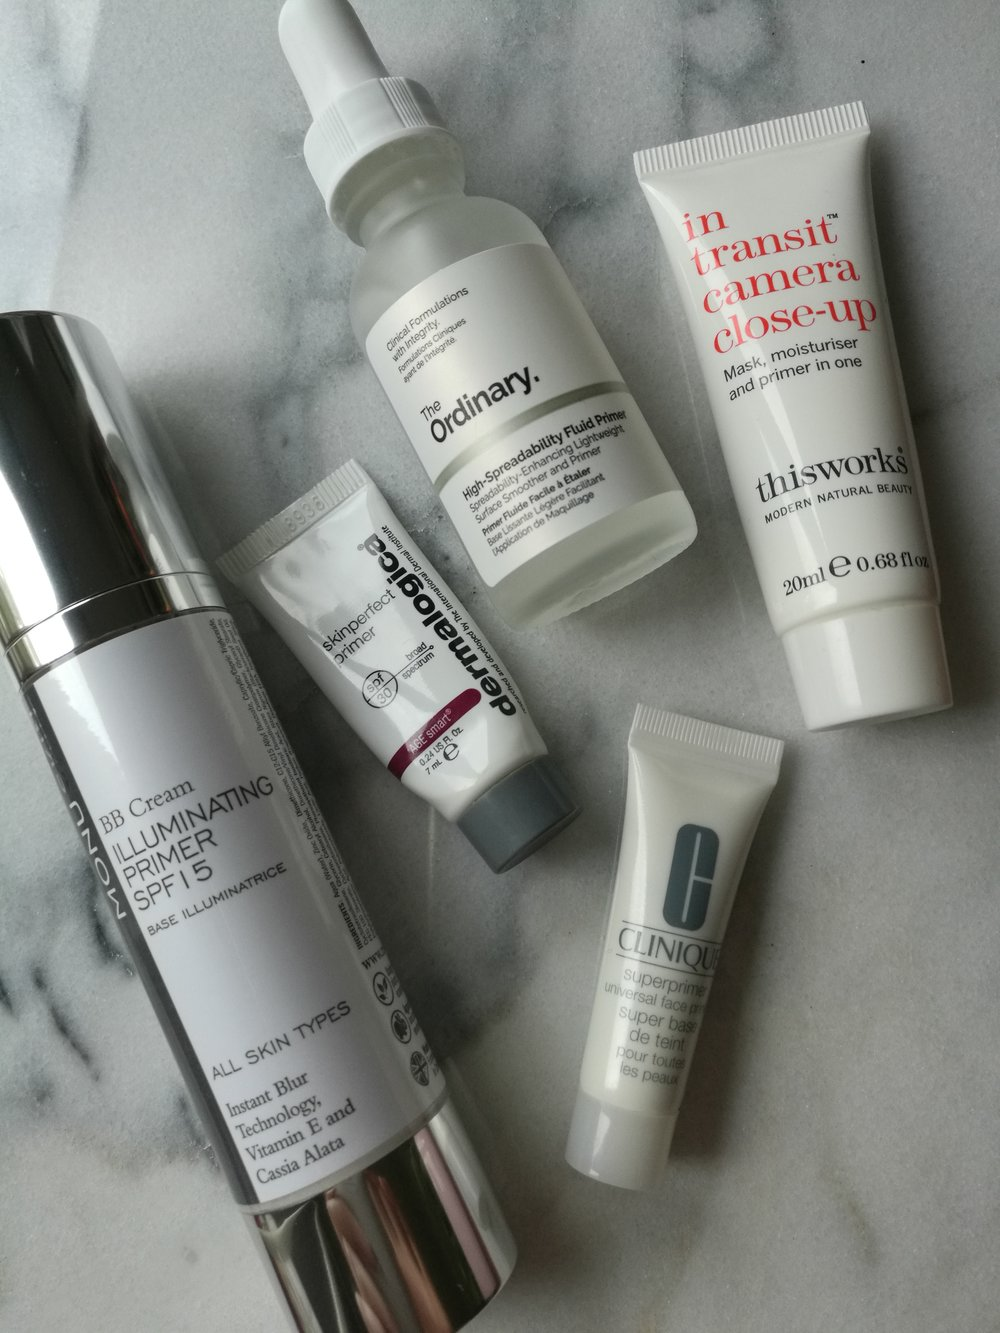 Face Primer Clinique Thisworks MONUSKIN Dermalogica The Ordinary best products make up